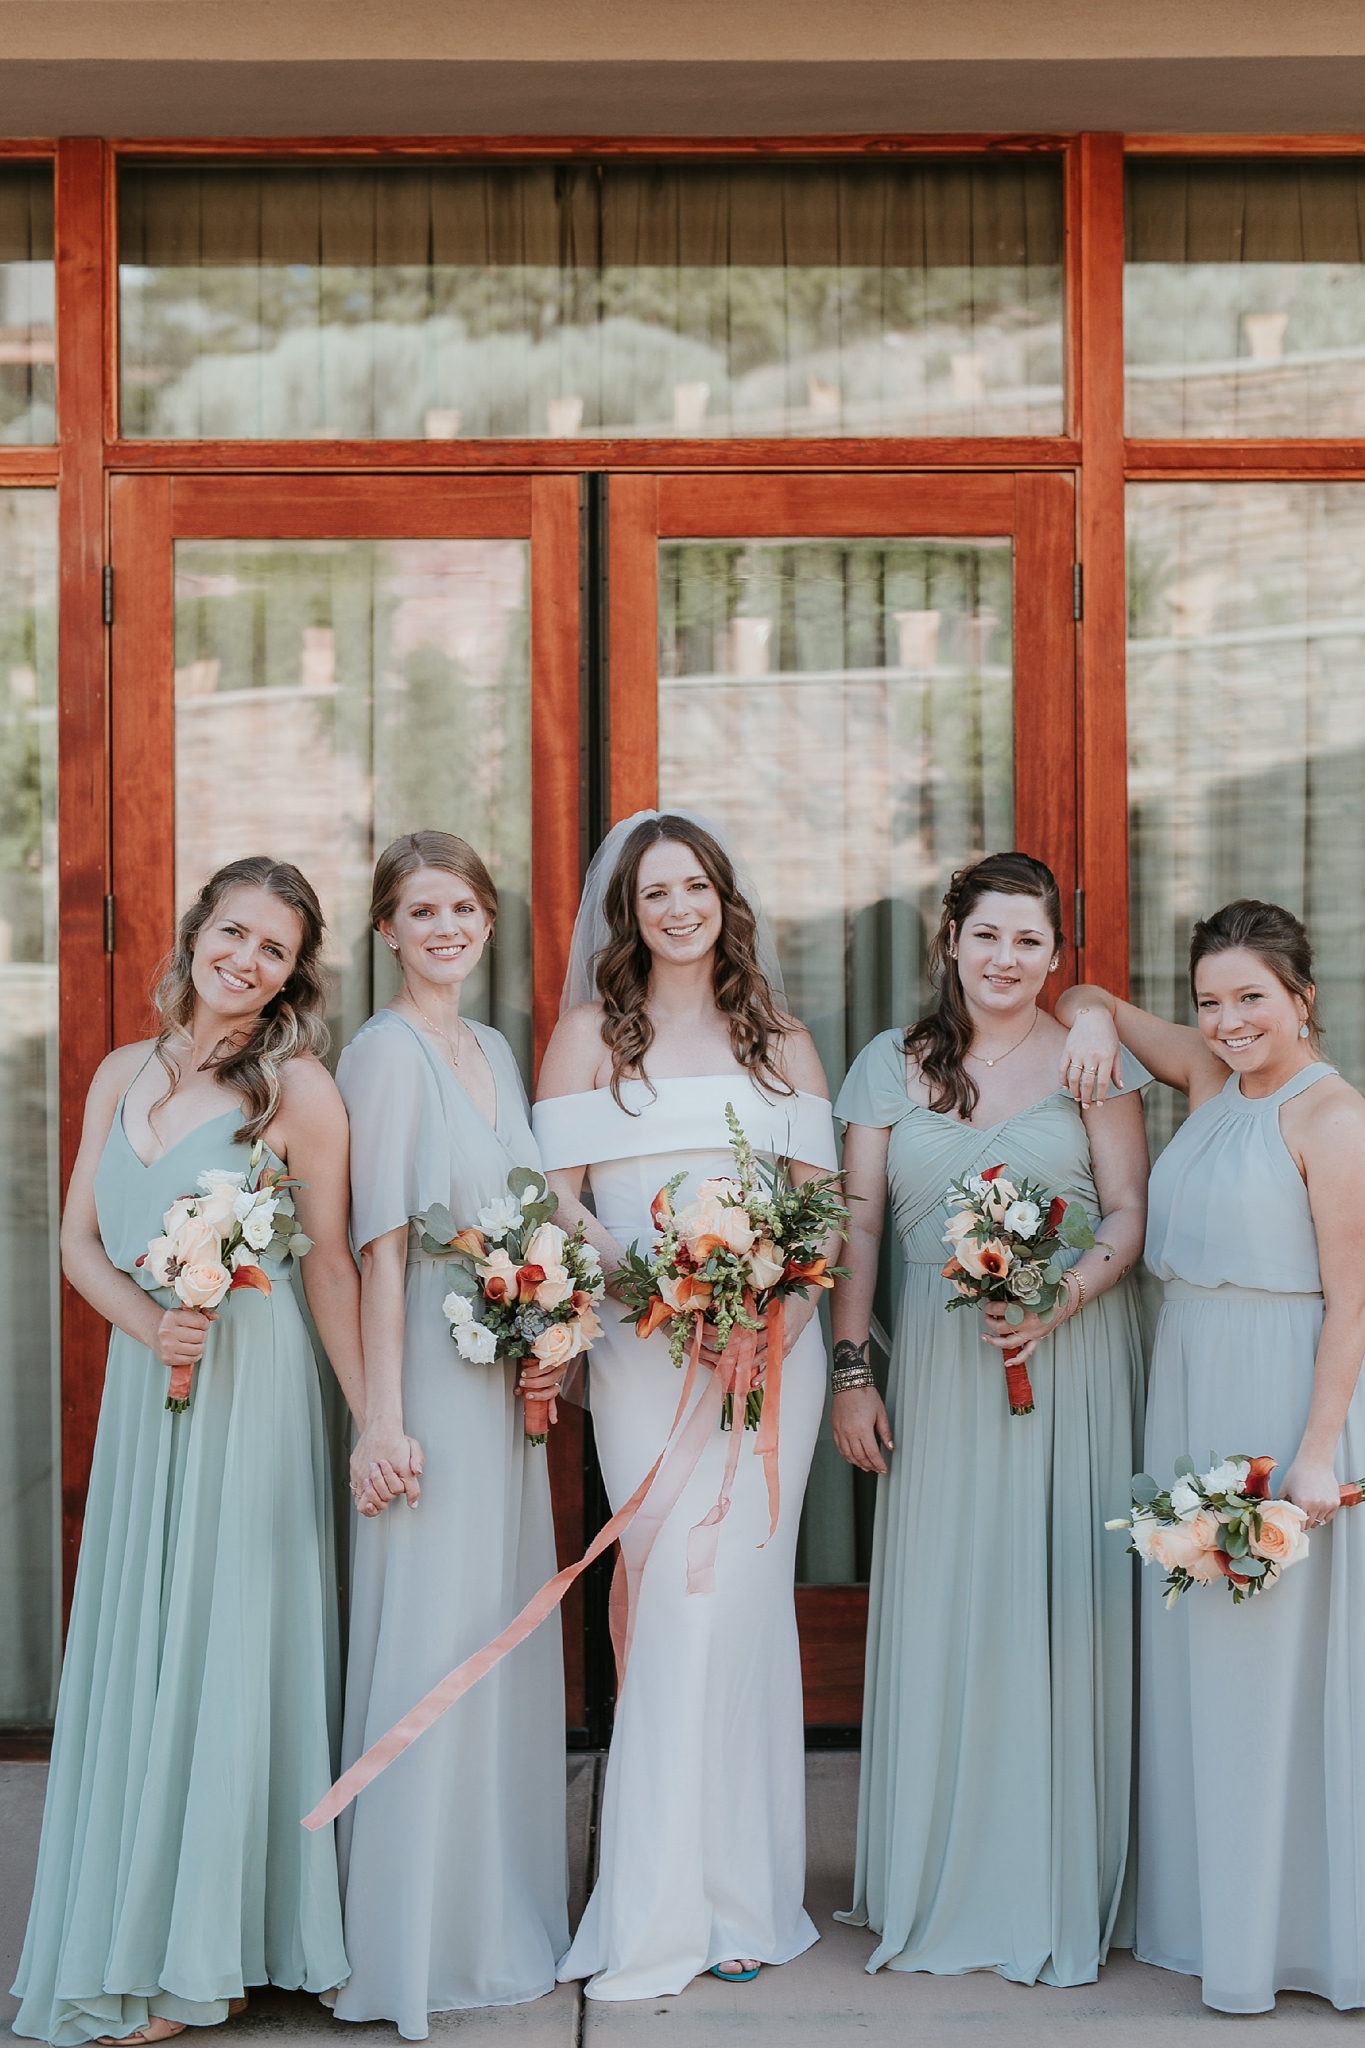 Alicia+lucia+photography+-+albuquerque+wedding+photographer+-+santa+fe+wedding+photography+-+new+mexico+wedding+photographer+-+new+mexico+wedding+-+new+mexico+wedding+-+colorado+wedding+-+bridesmaids+-+bridesmaid+style_0050.jpg